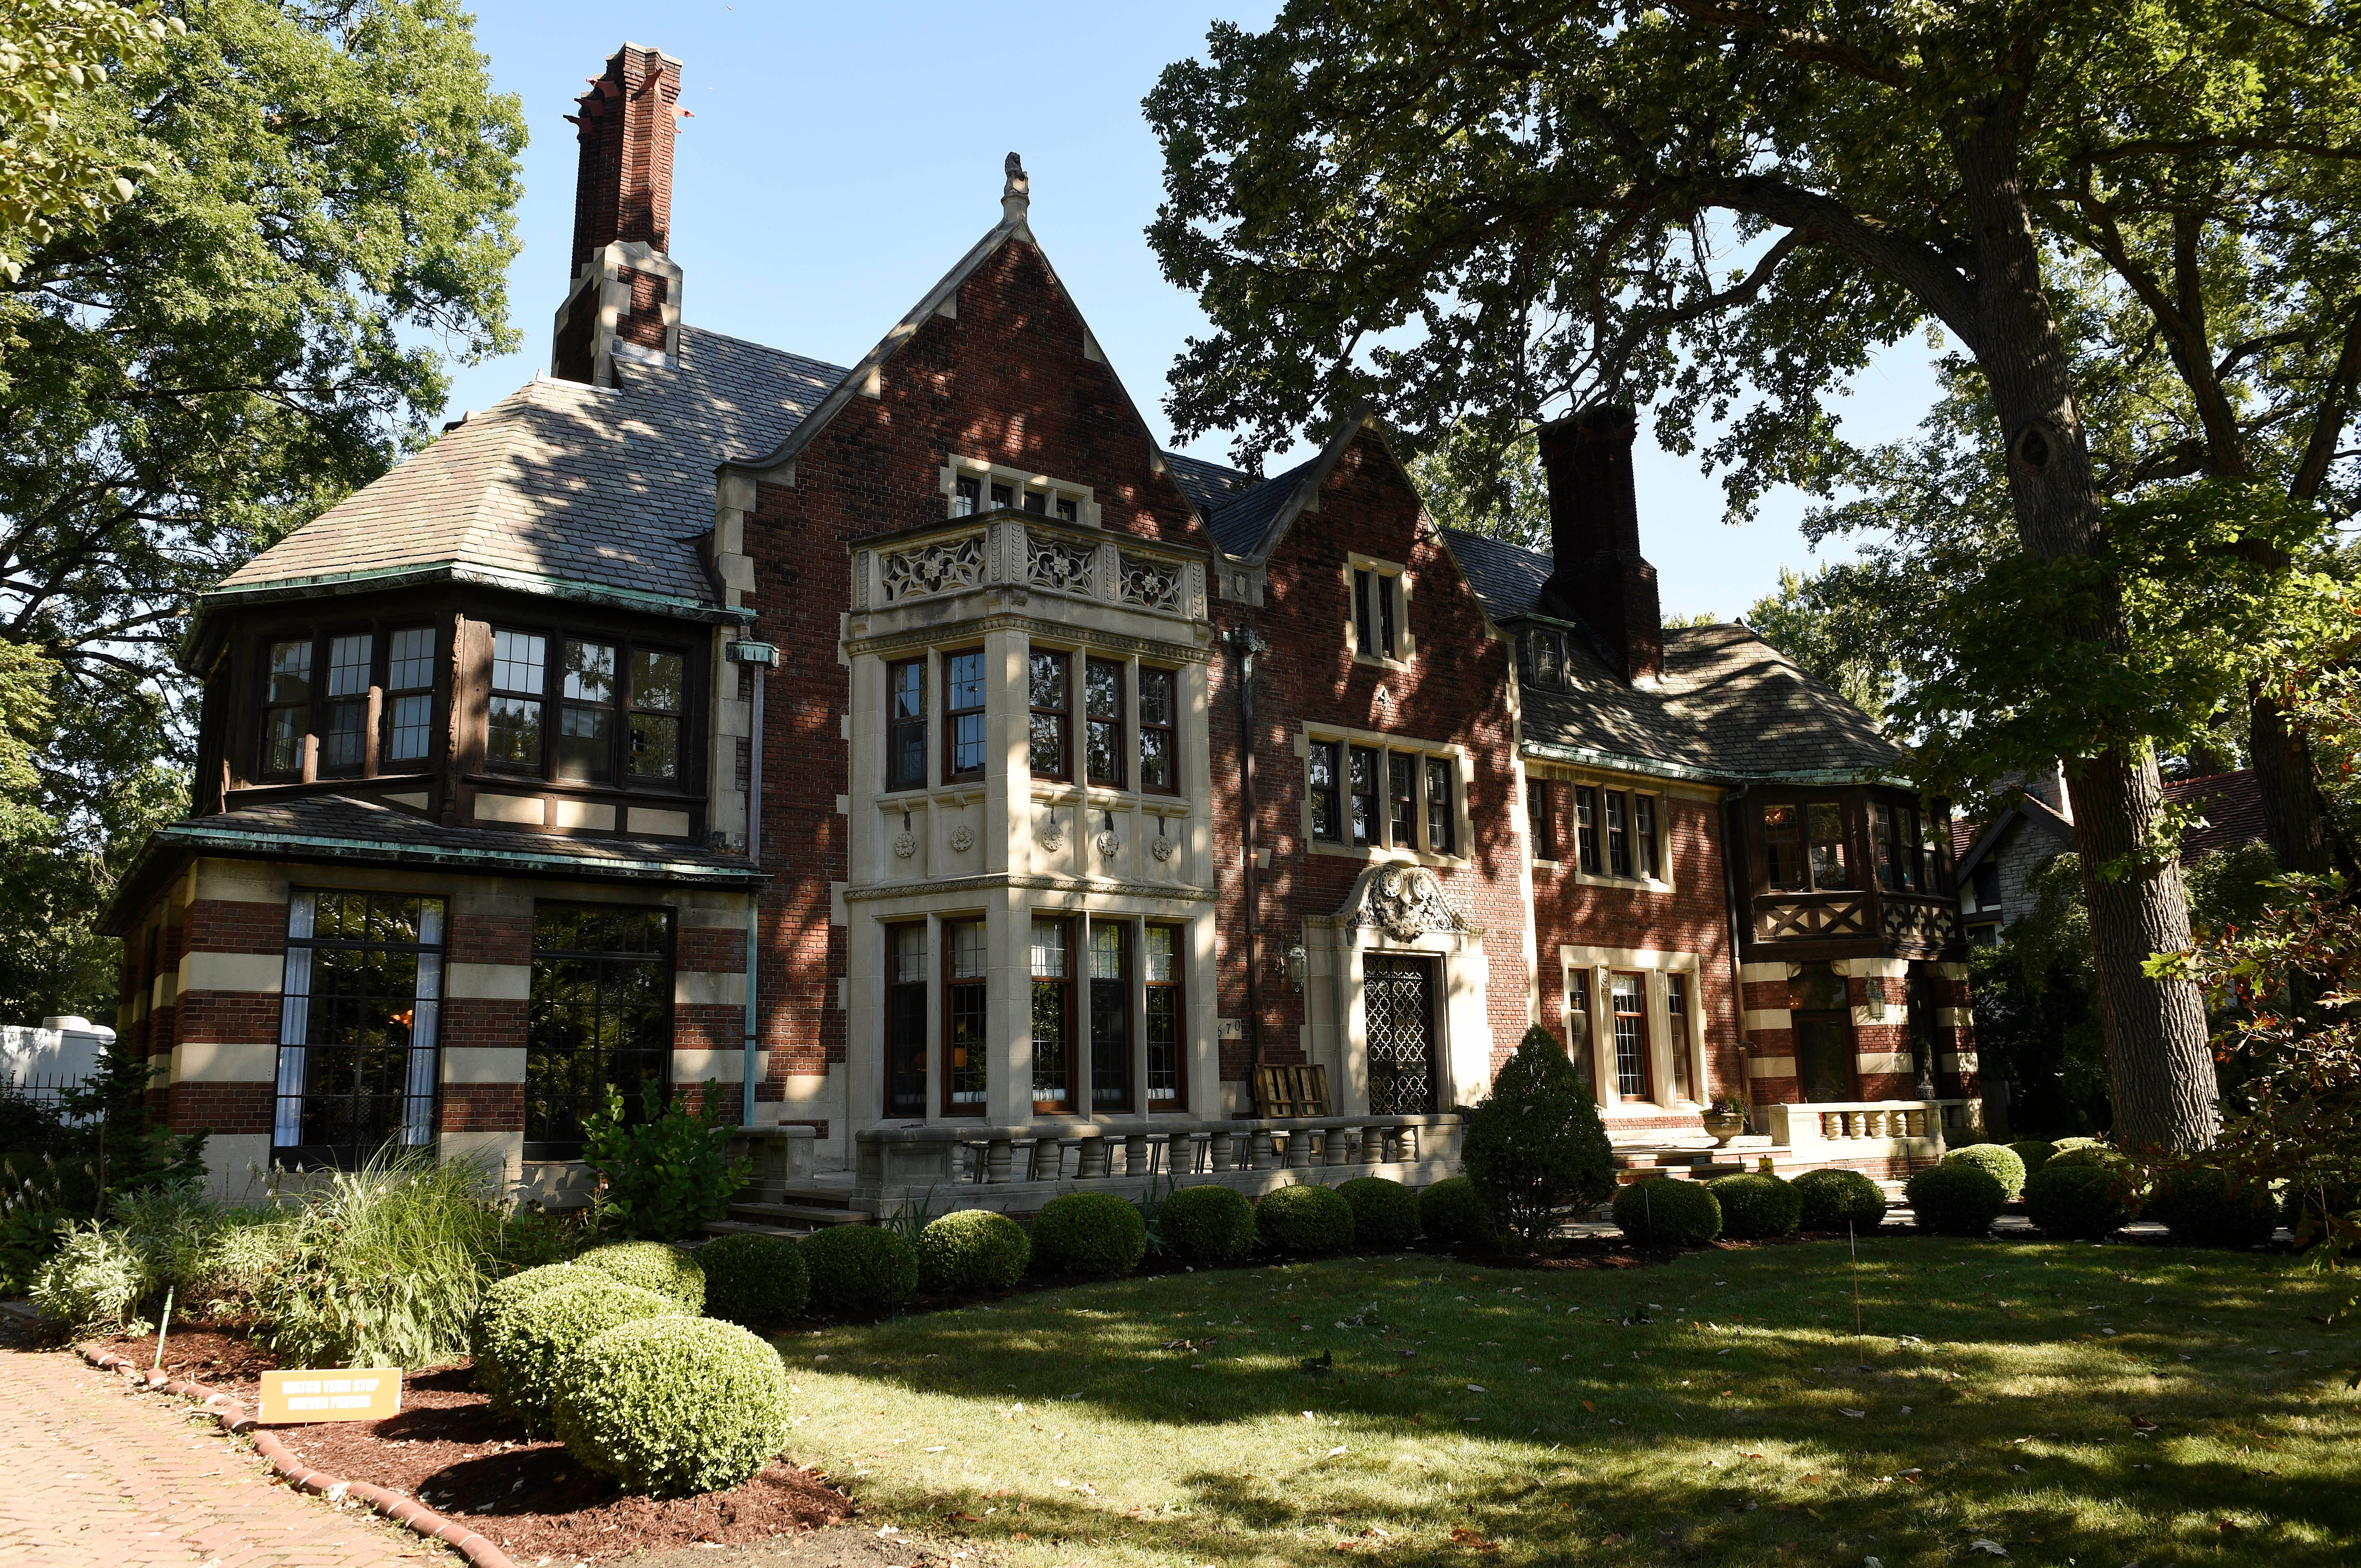 The Charles T. Fisher mansion.